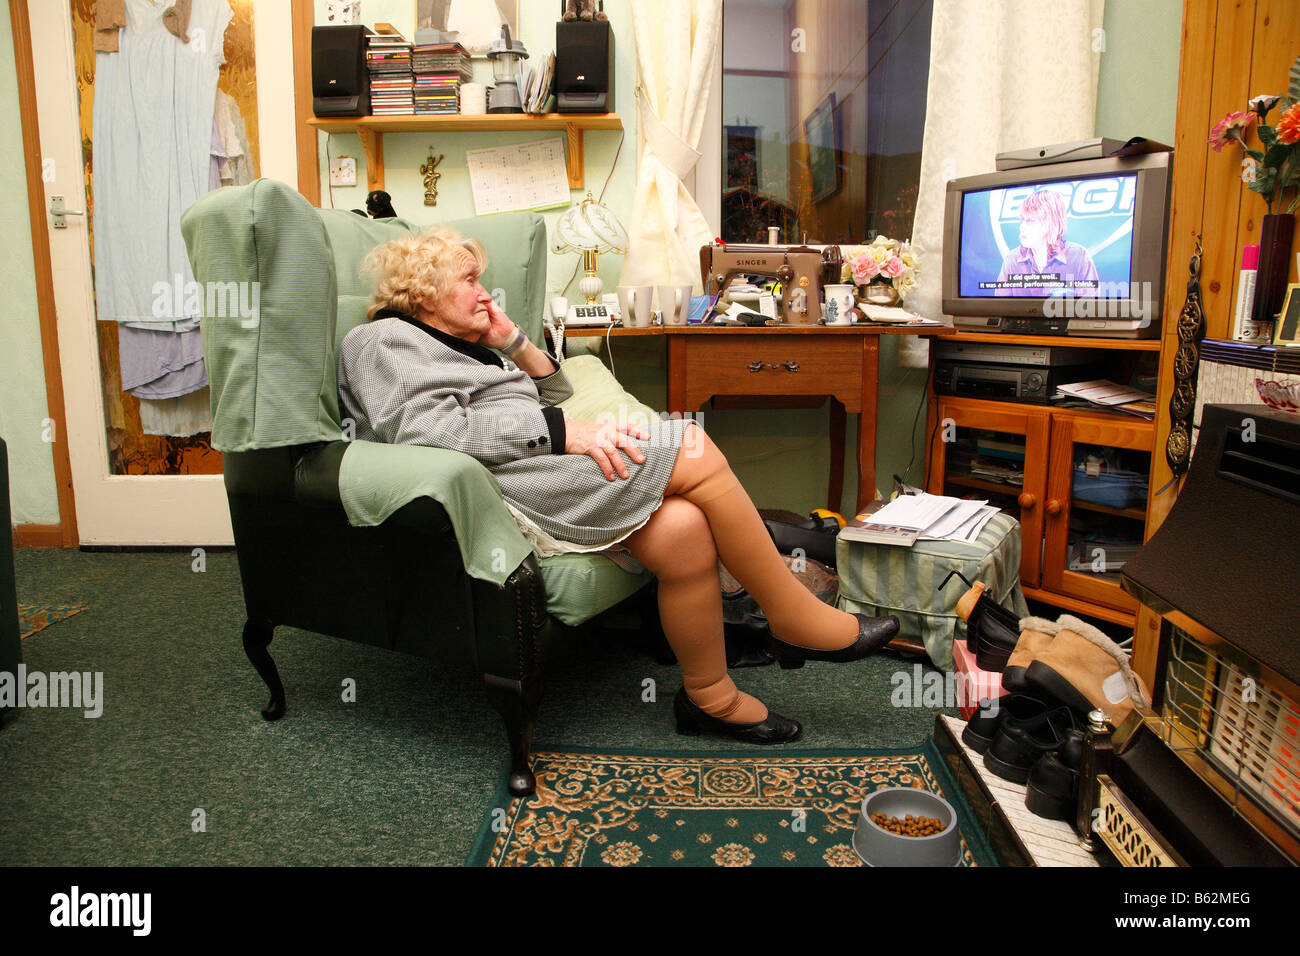 Old woman sitting in a chair watching TV Stock Photo - Alamy